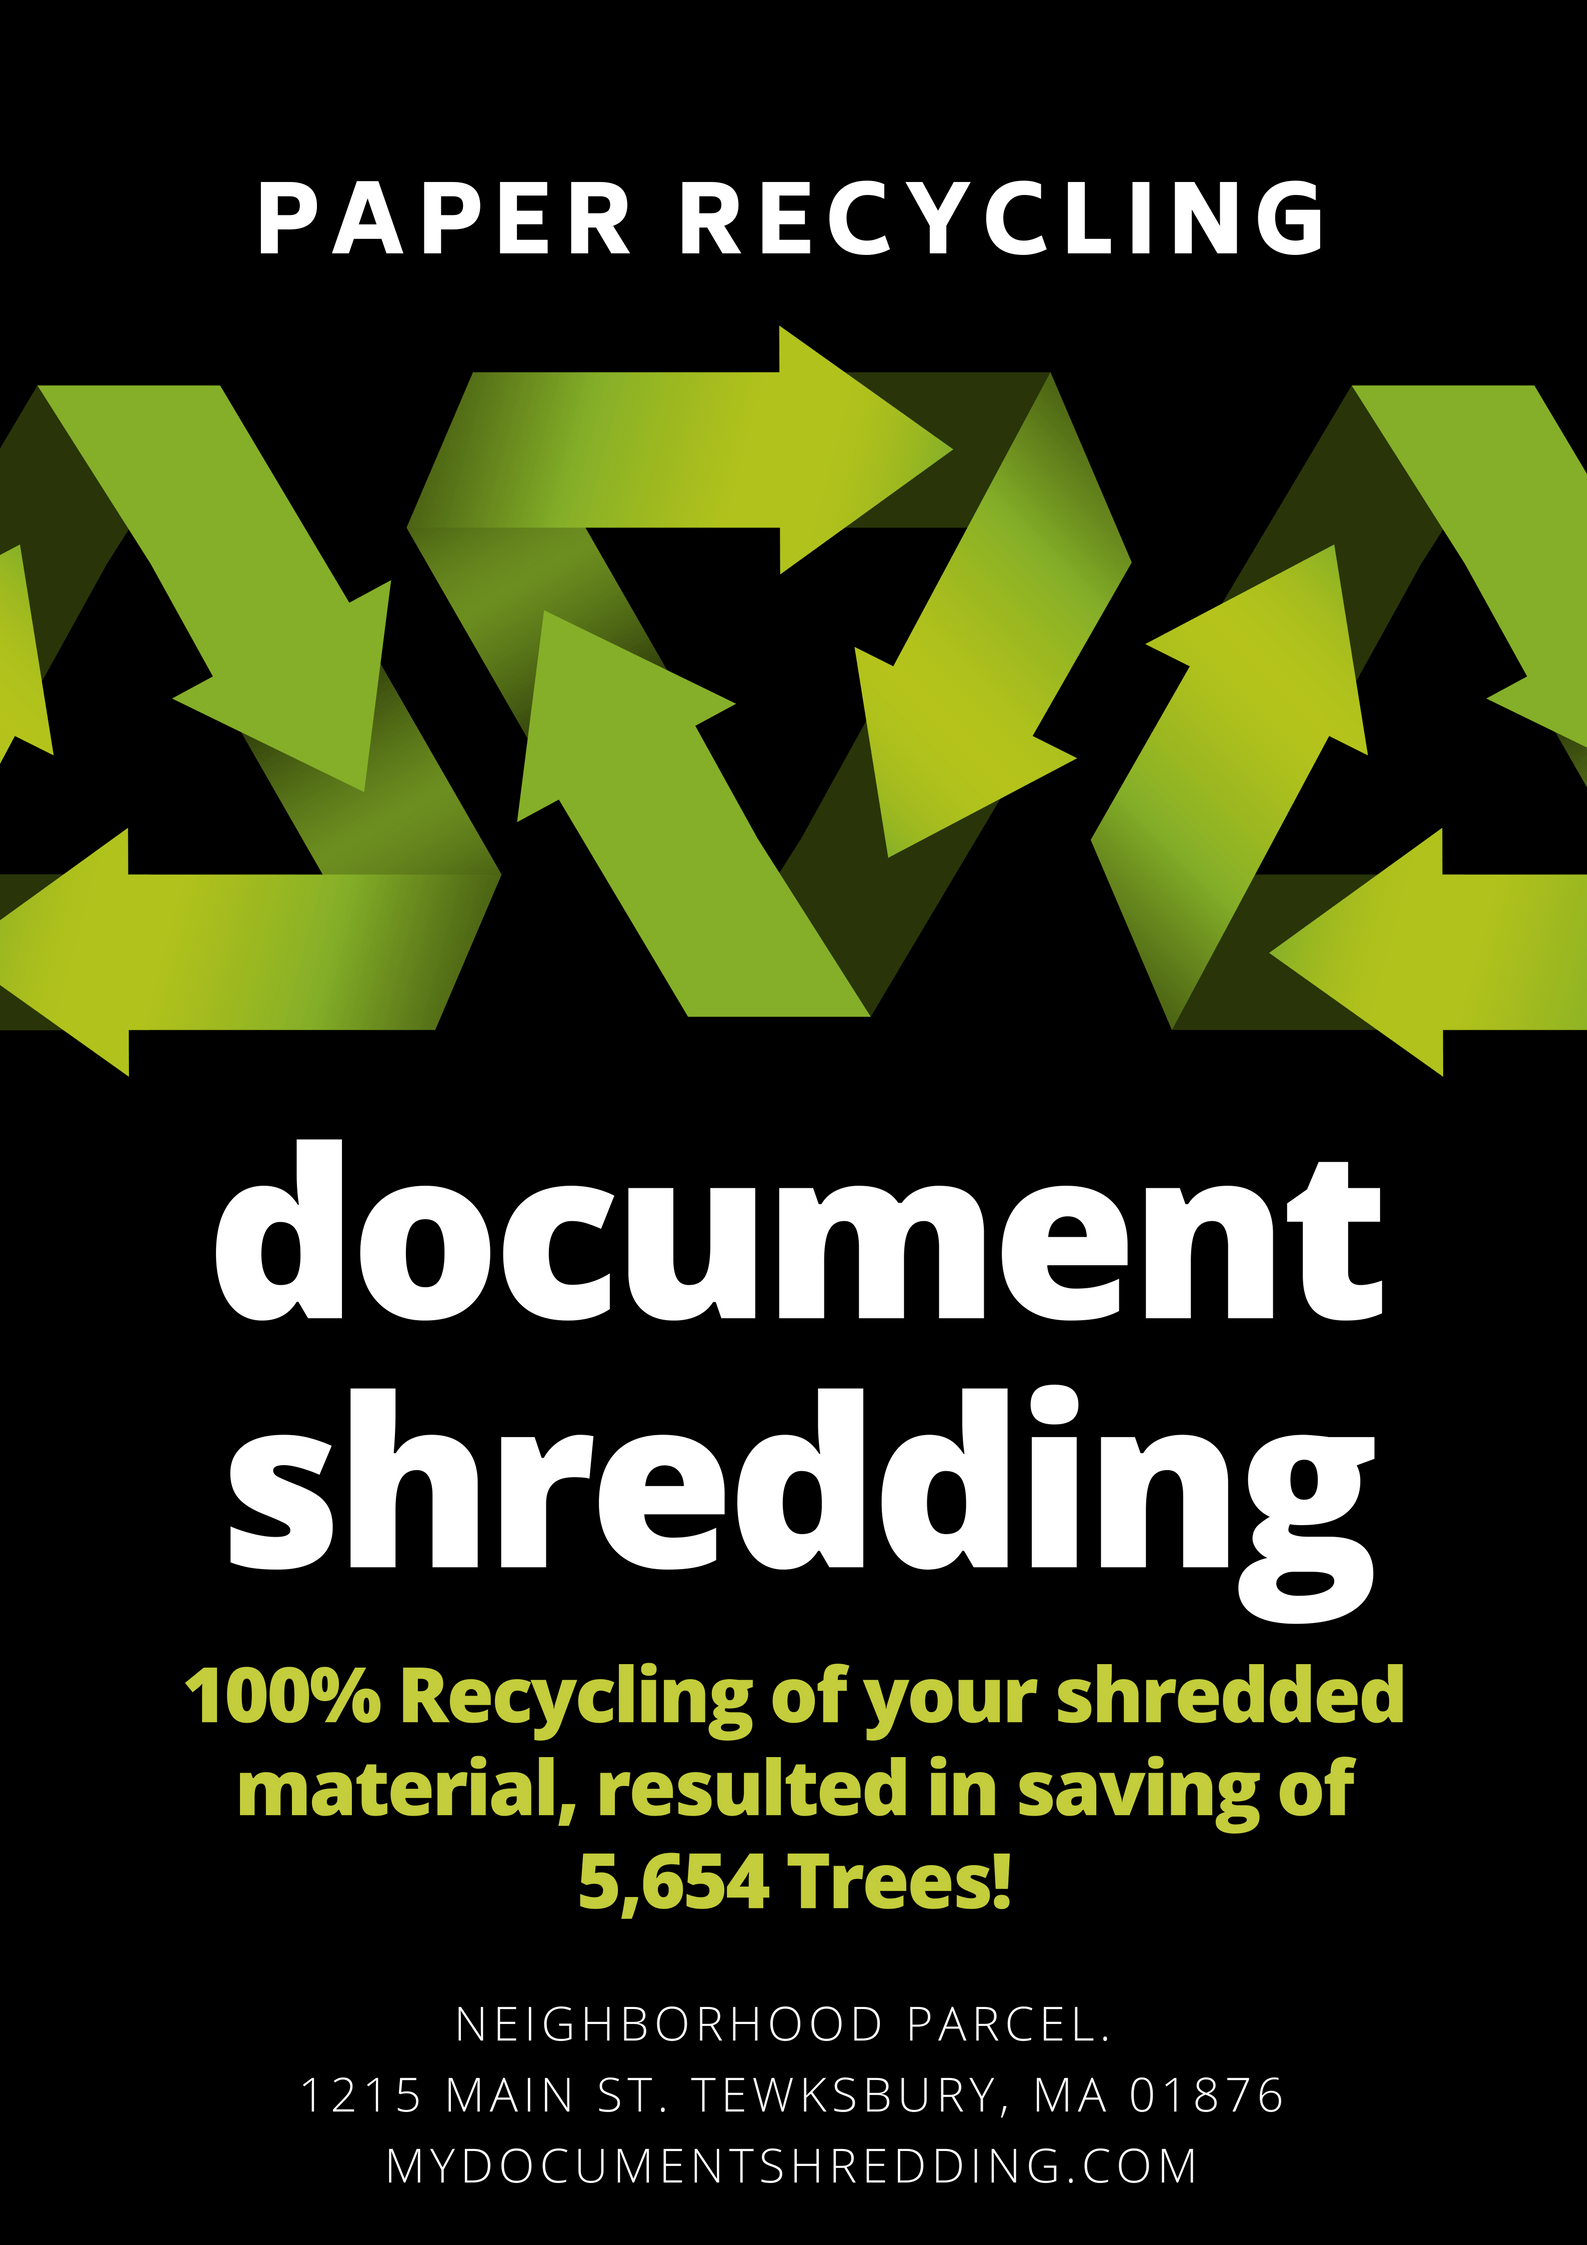 Personal document shredding service Boston MA